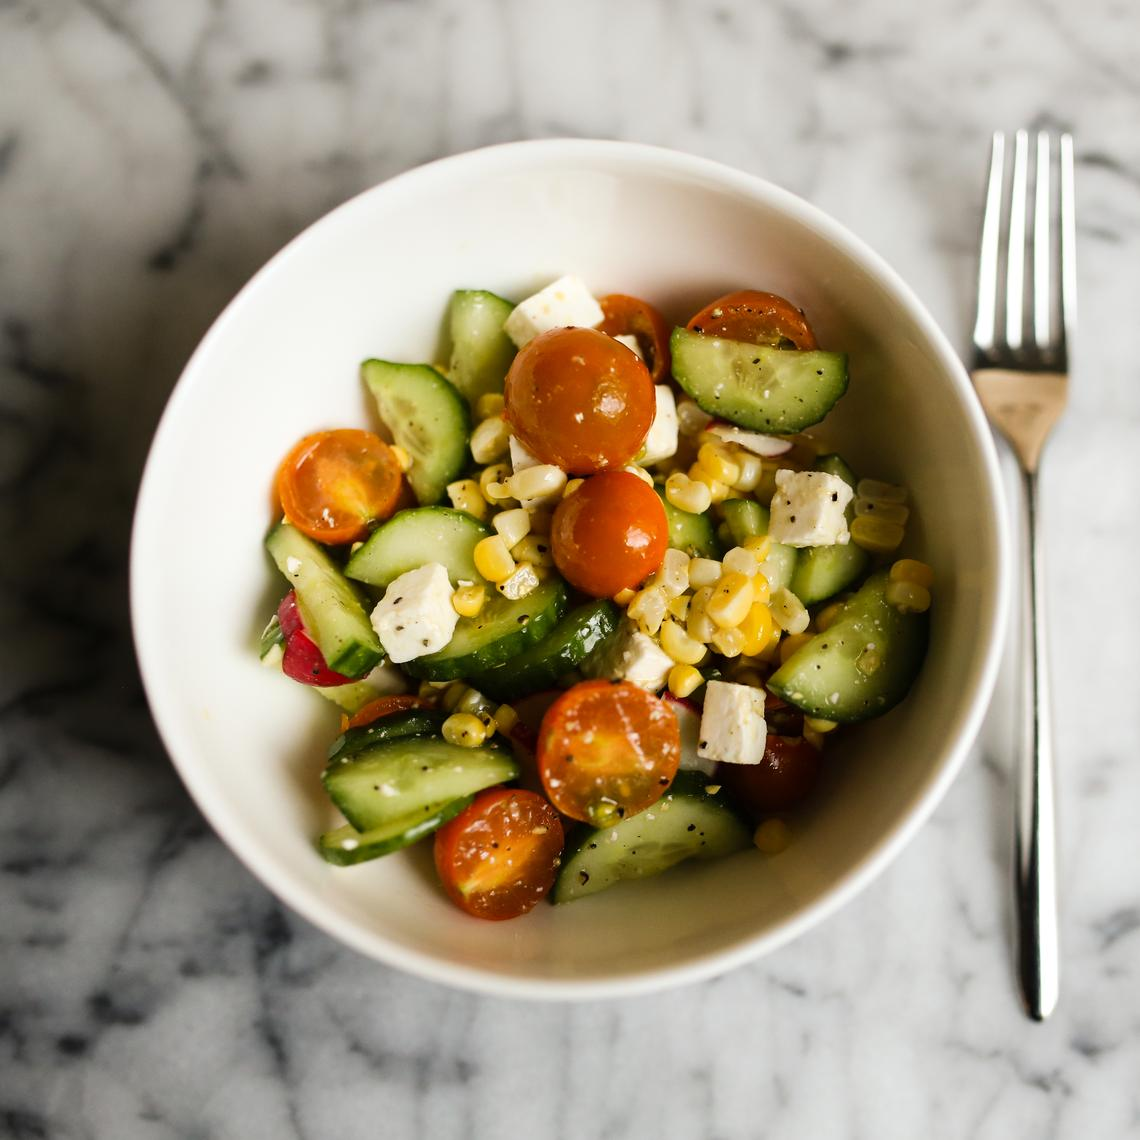 Sungold, Cucumber, and Corn Salad